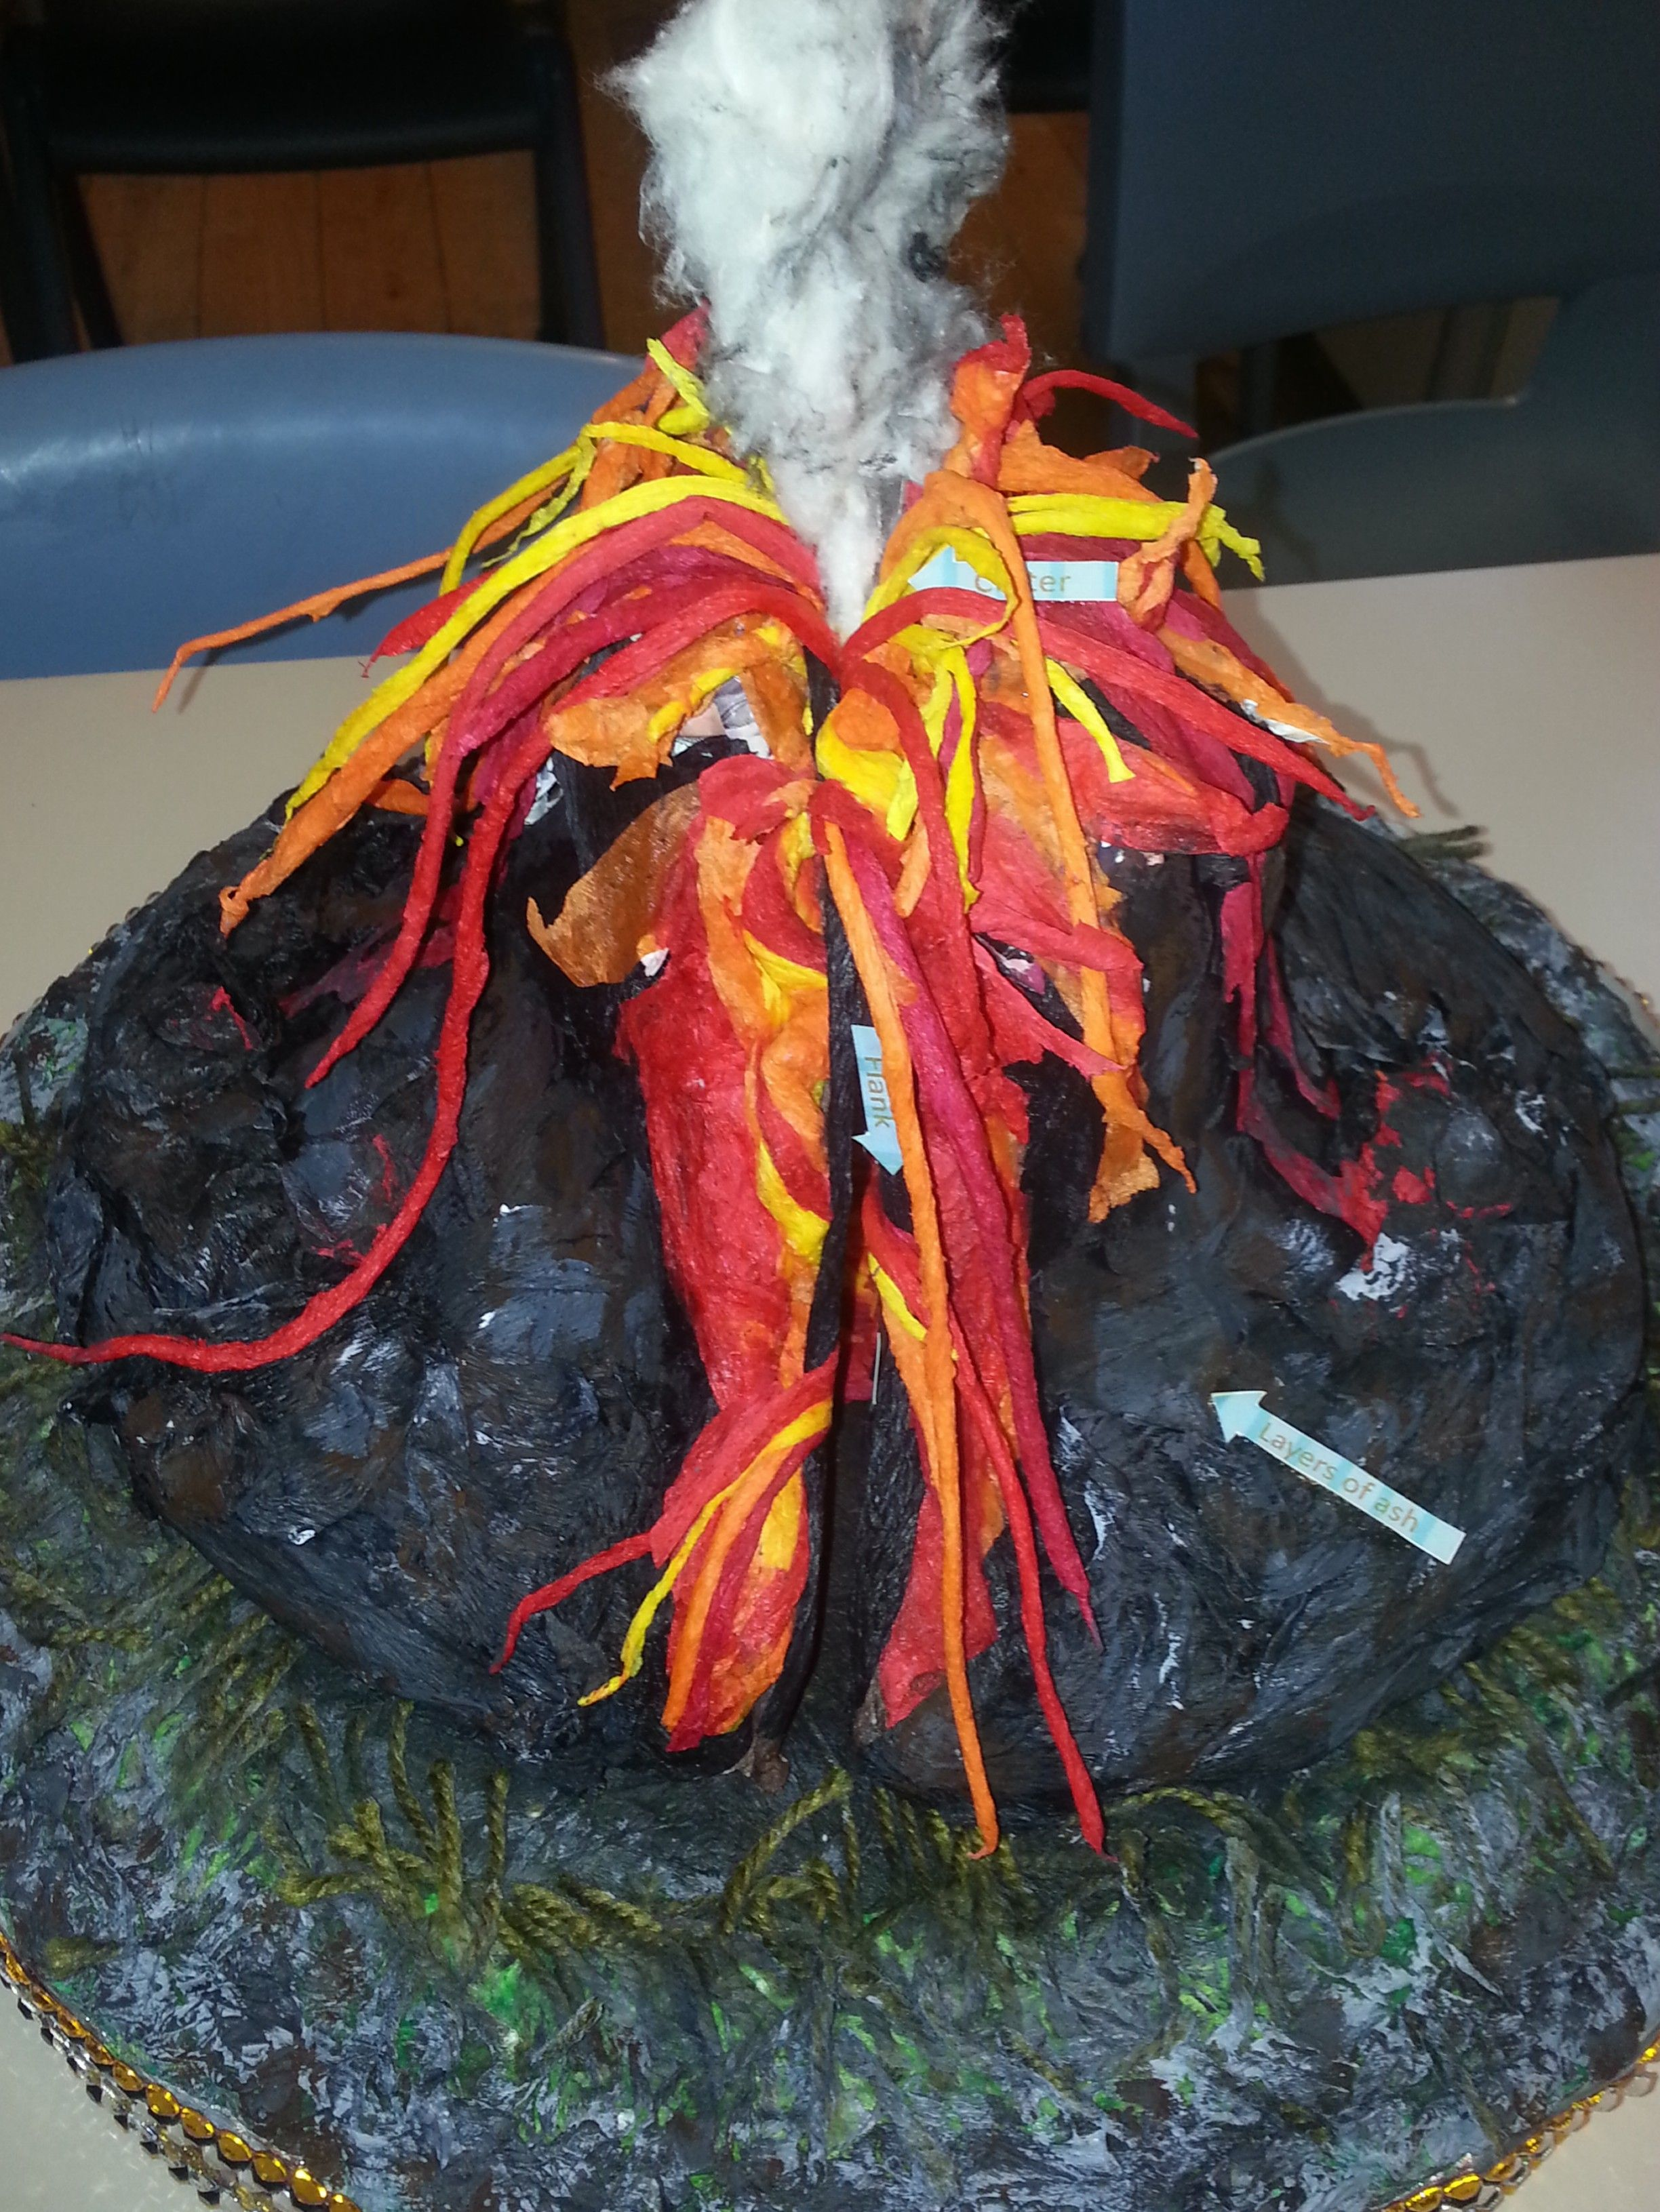 Making volcano model at home